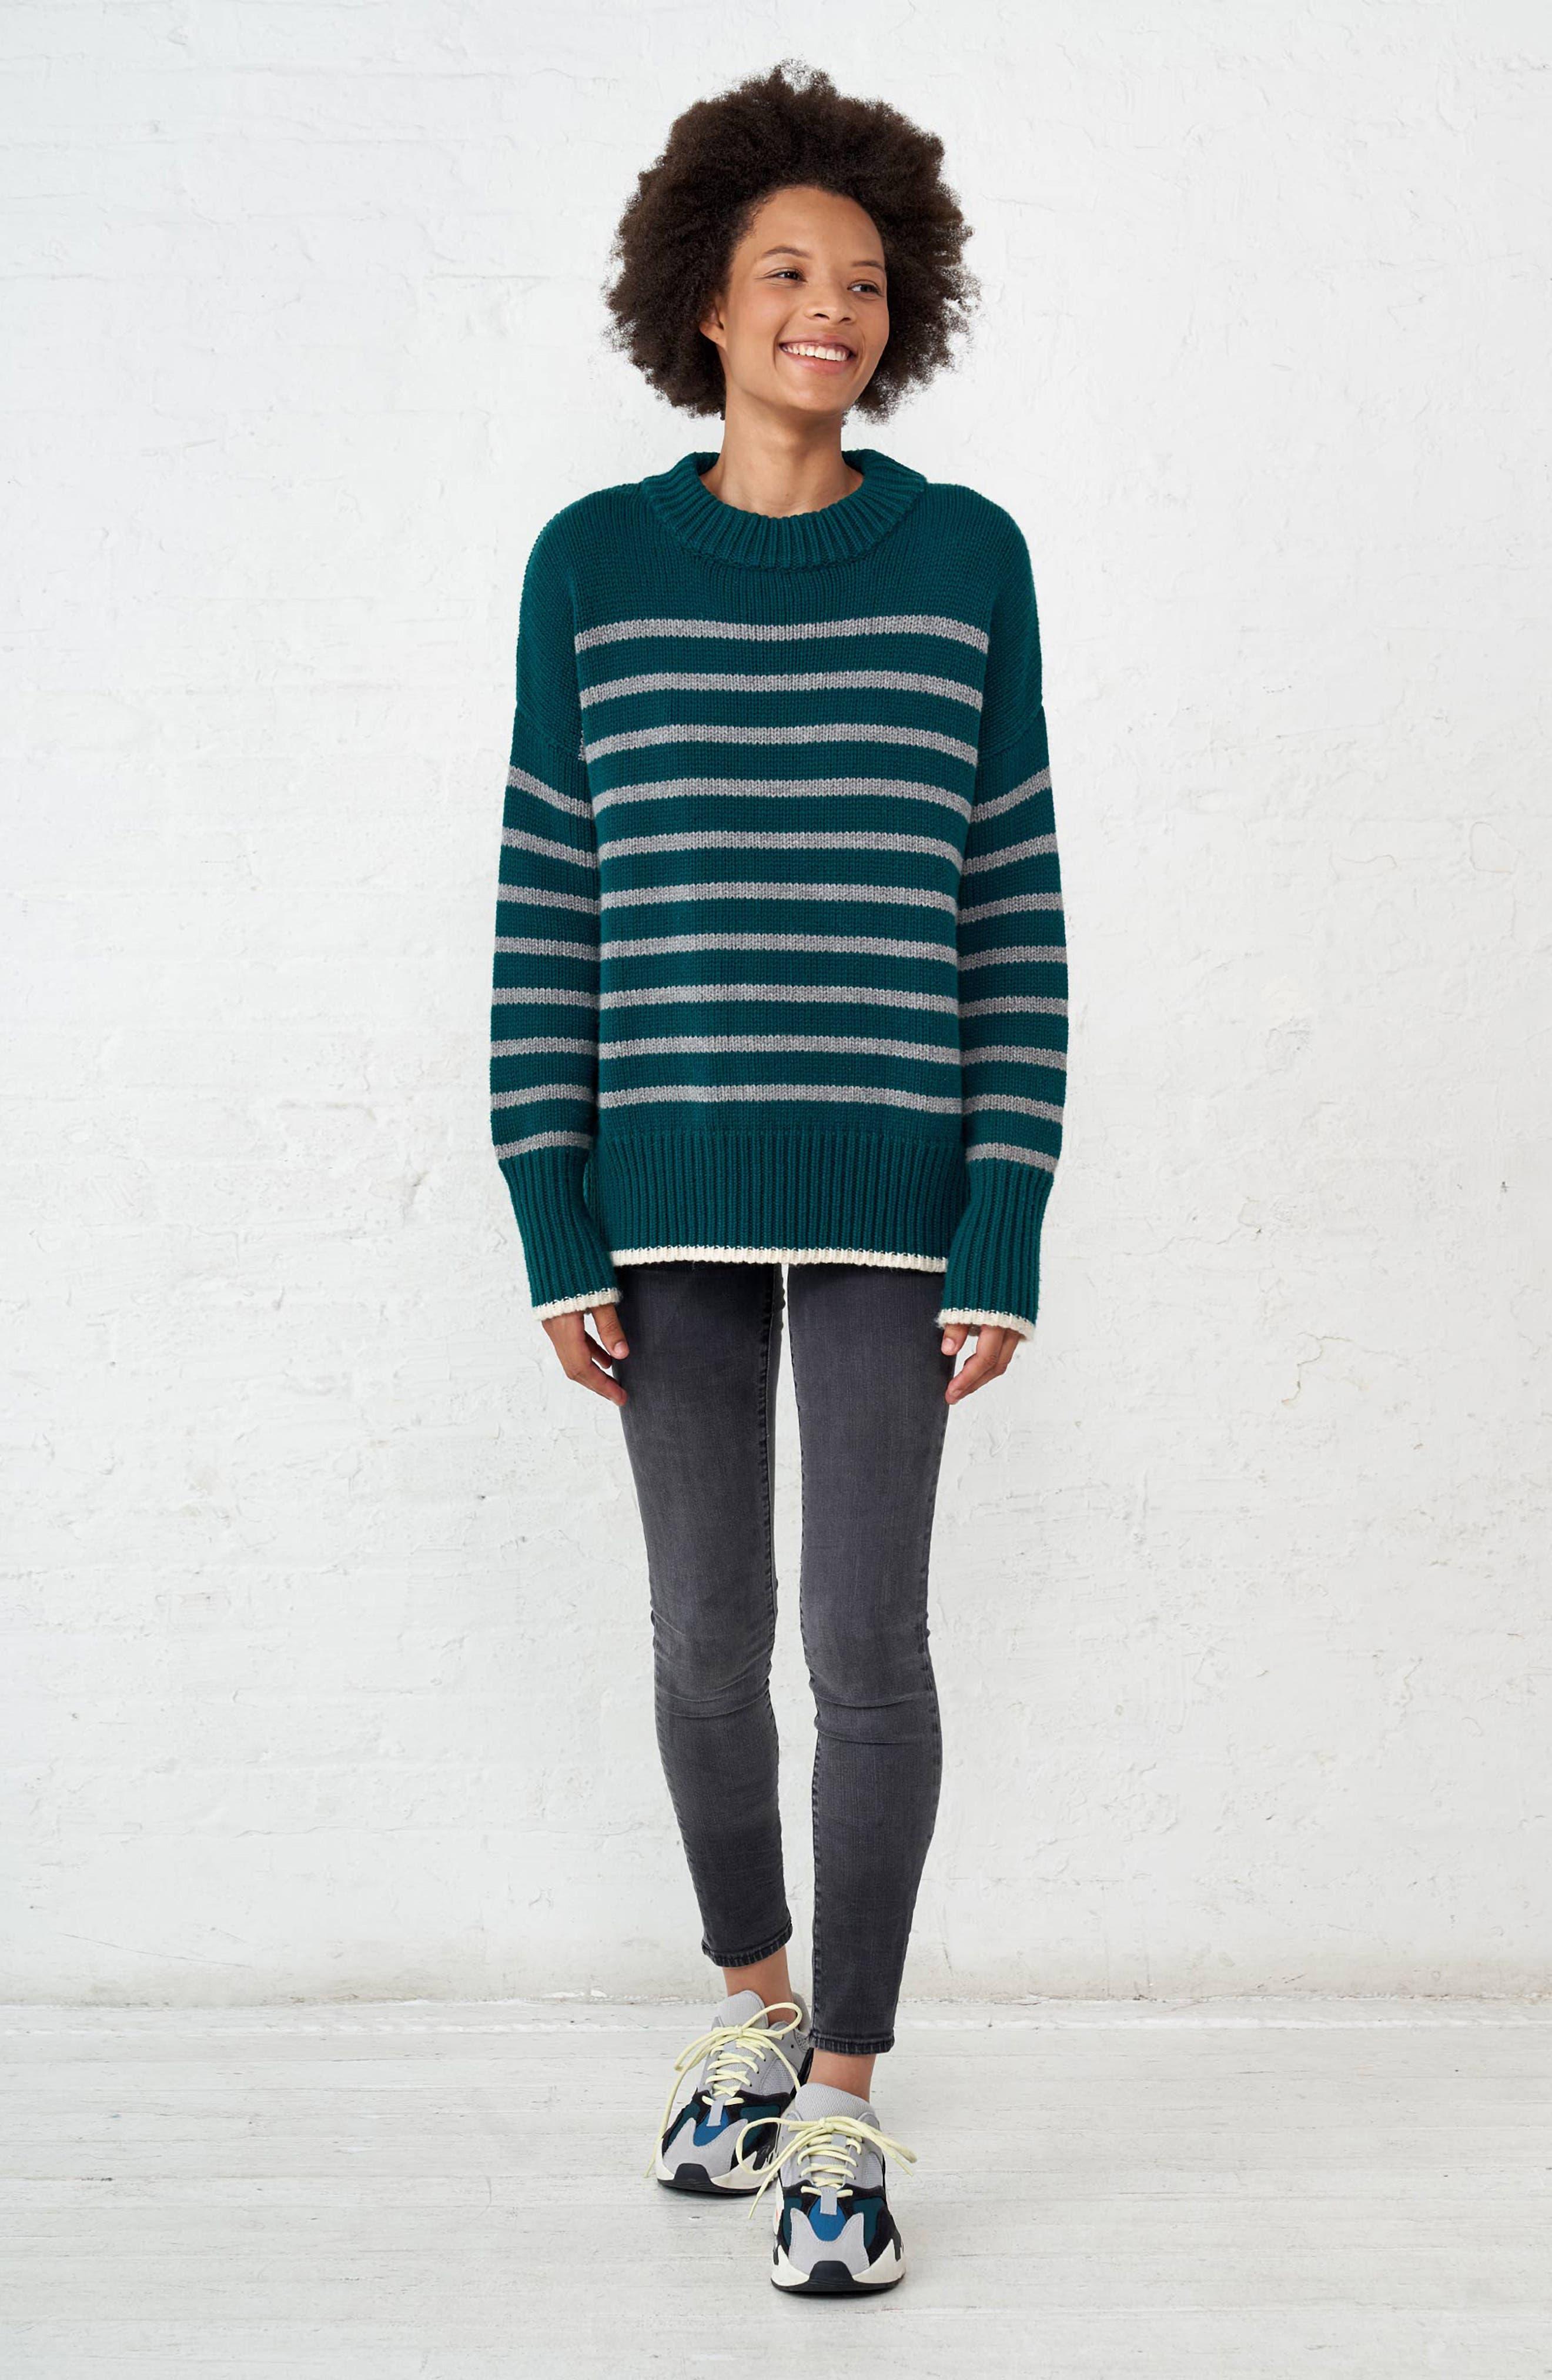 Marin Wool & Cashmere Sweater,                             Alternate thumbnail 7, color,                             FOREST GREEN/ GREY MARLE